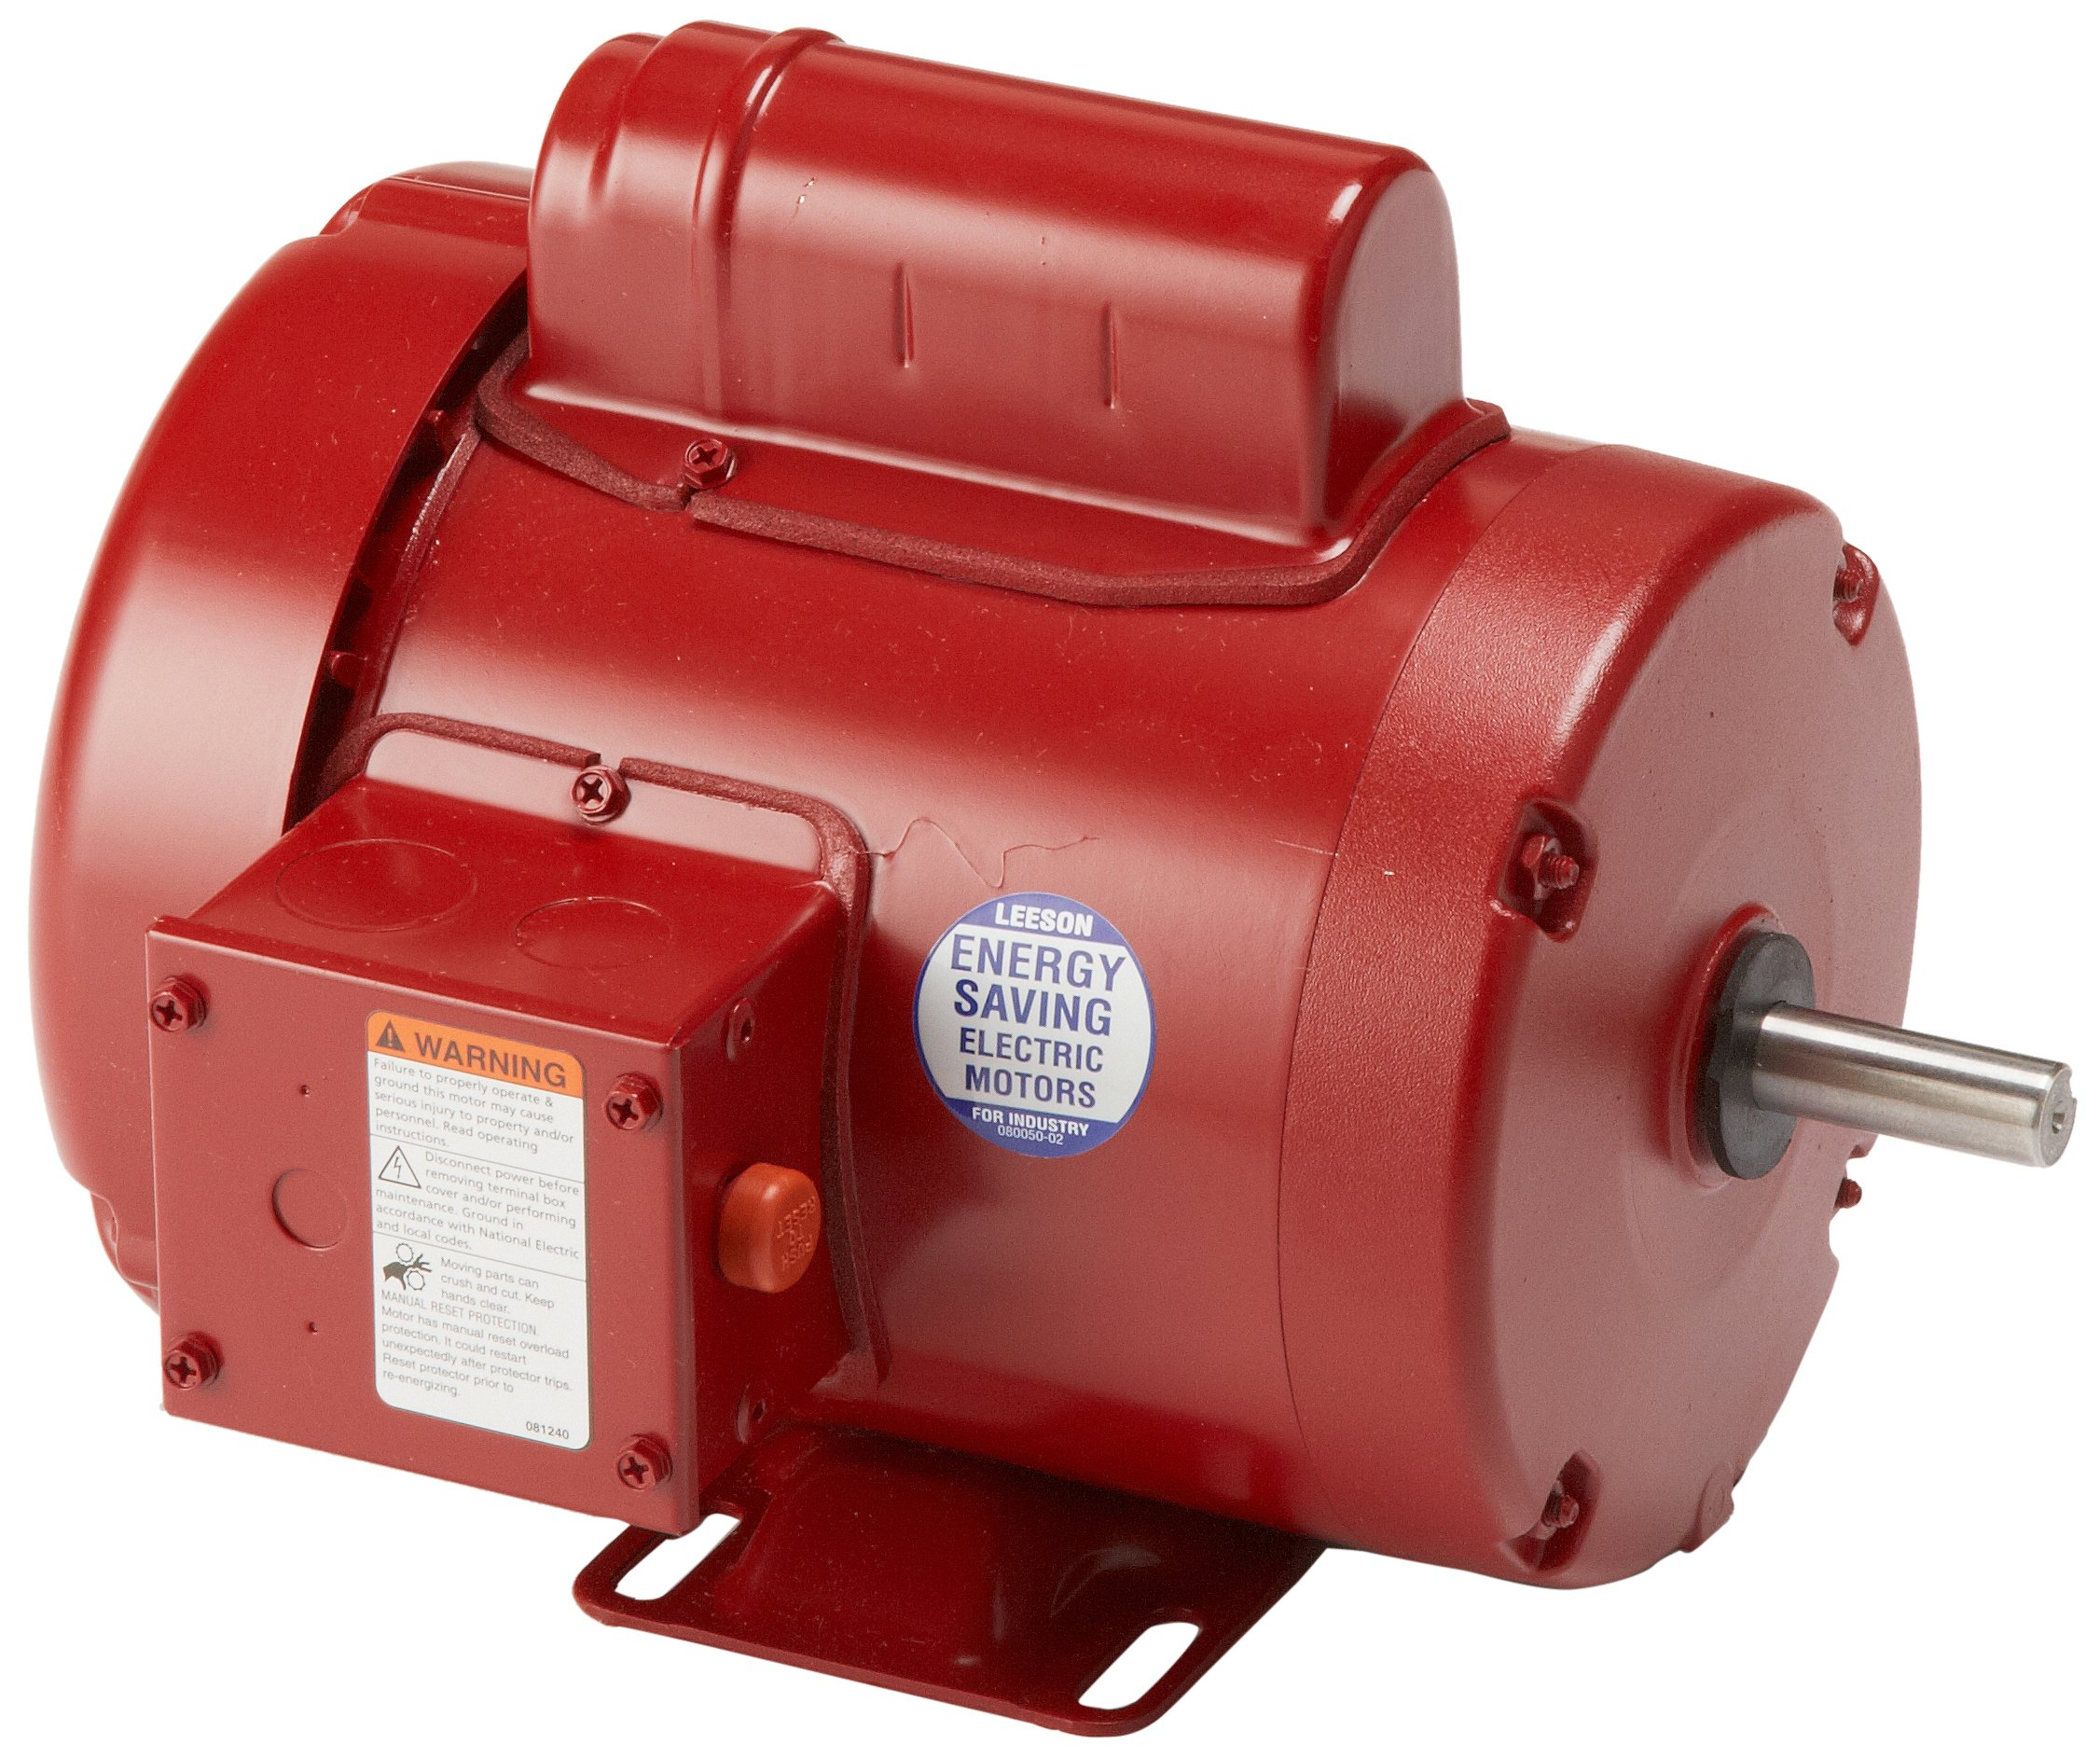 Leeson 110087.00 General Purpose Agricultural Motor, 1 Phase, 56 Frame, Rigid Mounting, 3/4HP, 1800 RPM, 115/208-230V Voltage, 60Hz Fequency by Leeson